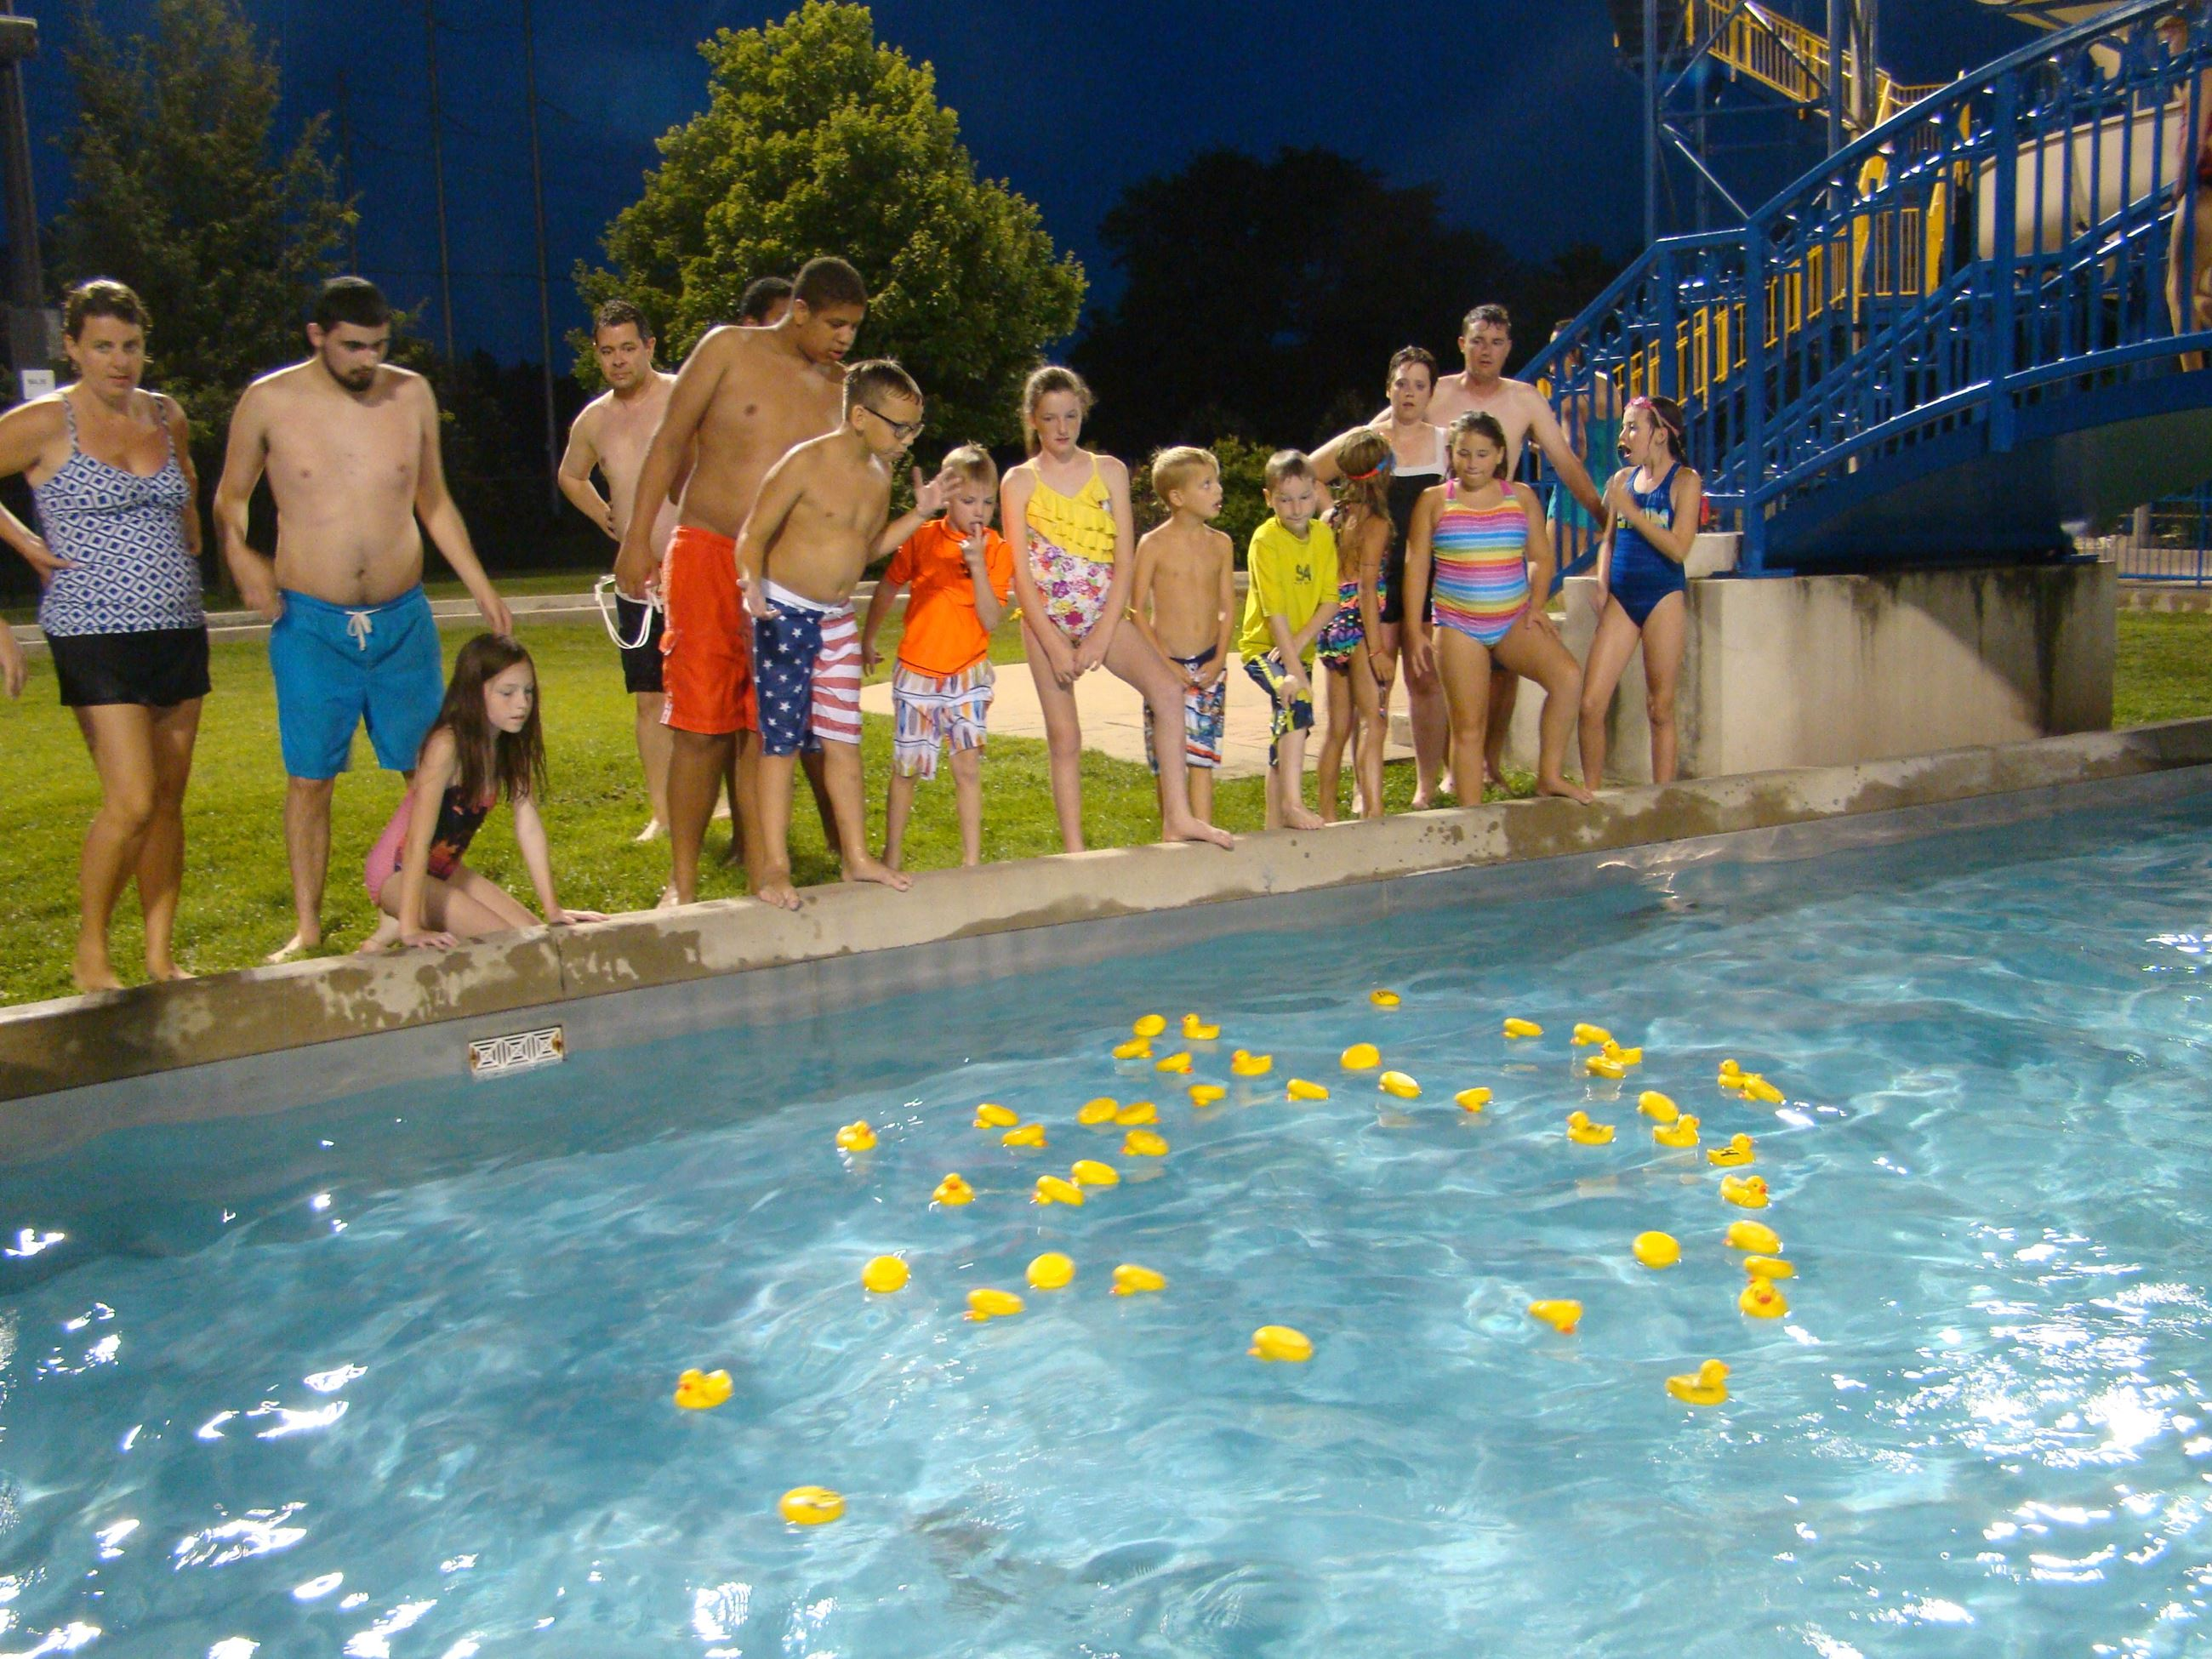 Children enjoying a rubber duck race in the outdoor pool.